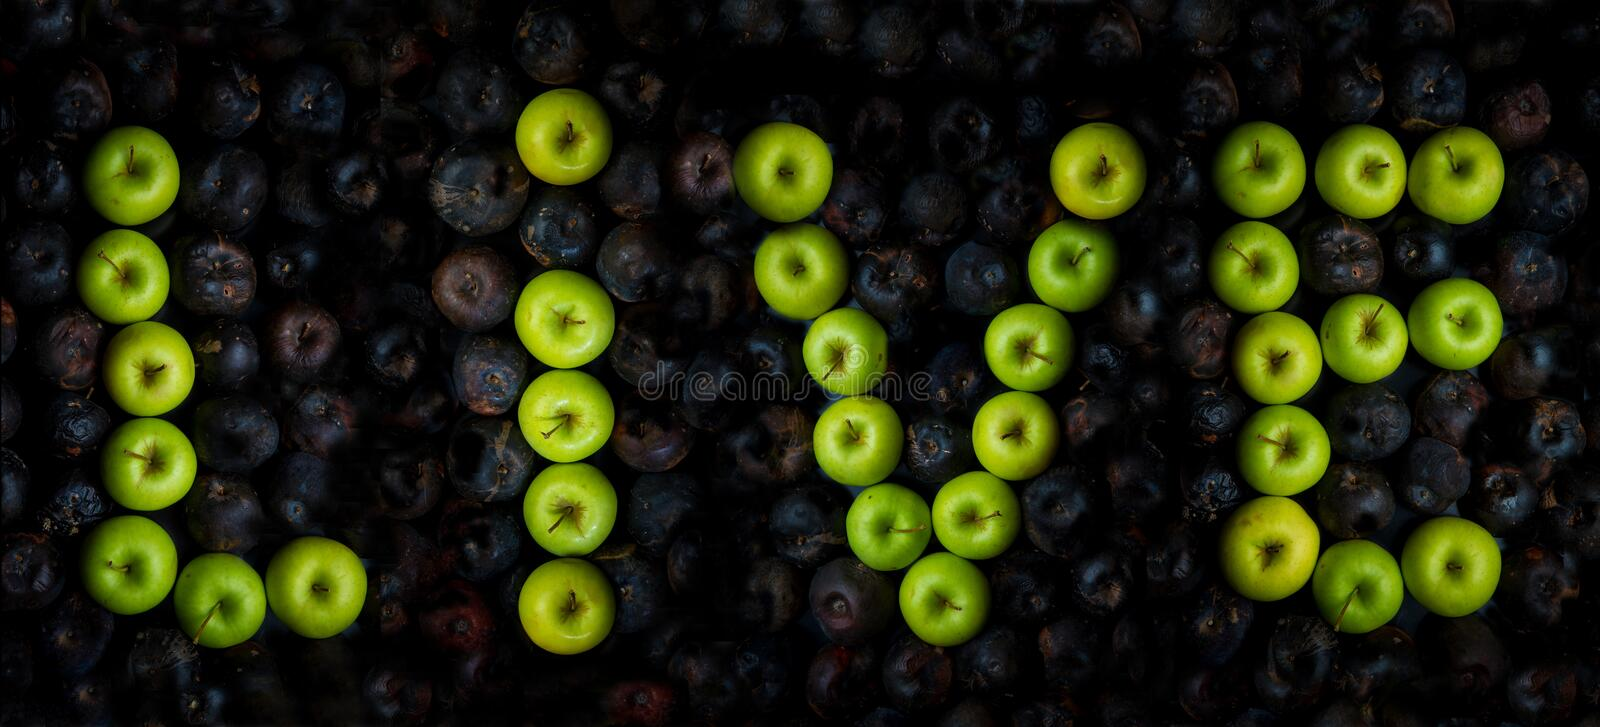 the inscription LIVE with green apples on a background of rotten black apples royalty free stock photos